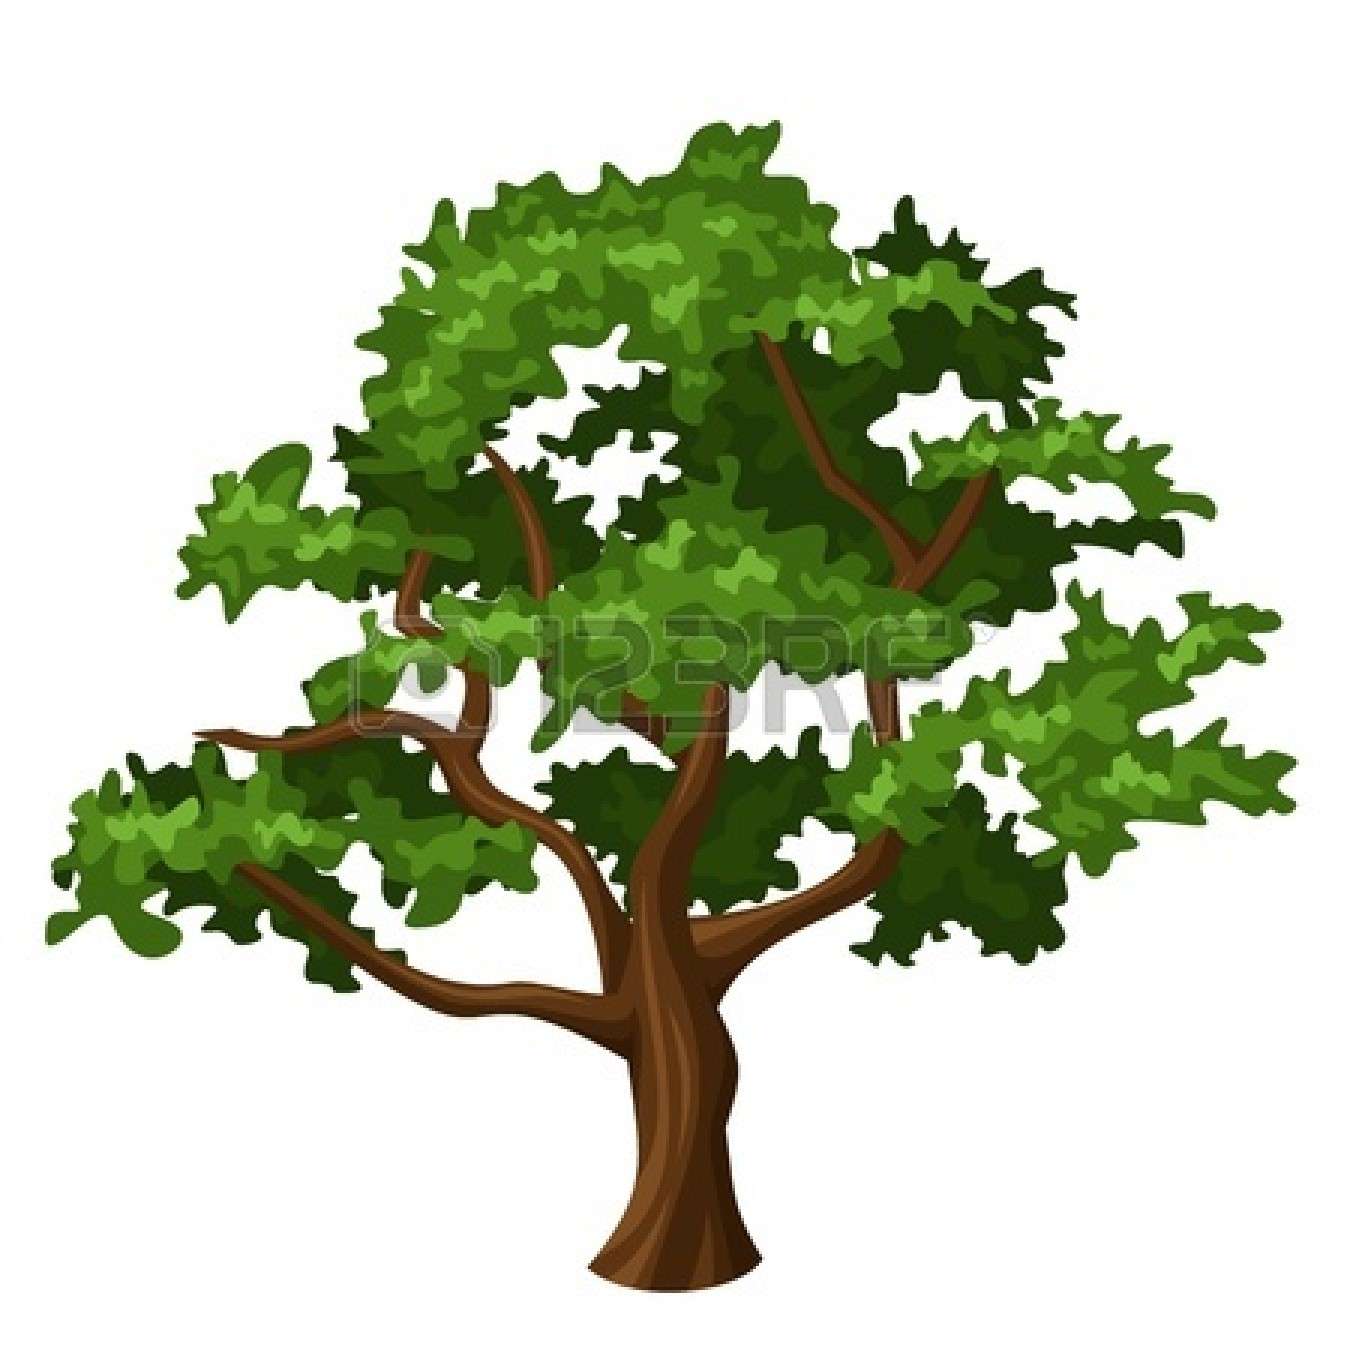 Baum clipart kostenlos png royalty free download Free Tree Clipart & Tree Clip Art Images - ClipartALL.com png royalty free download